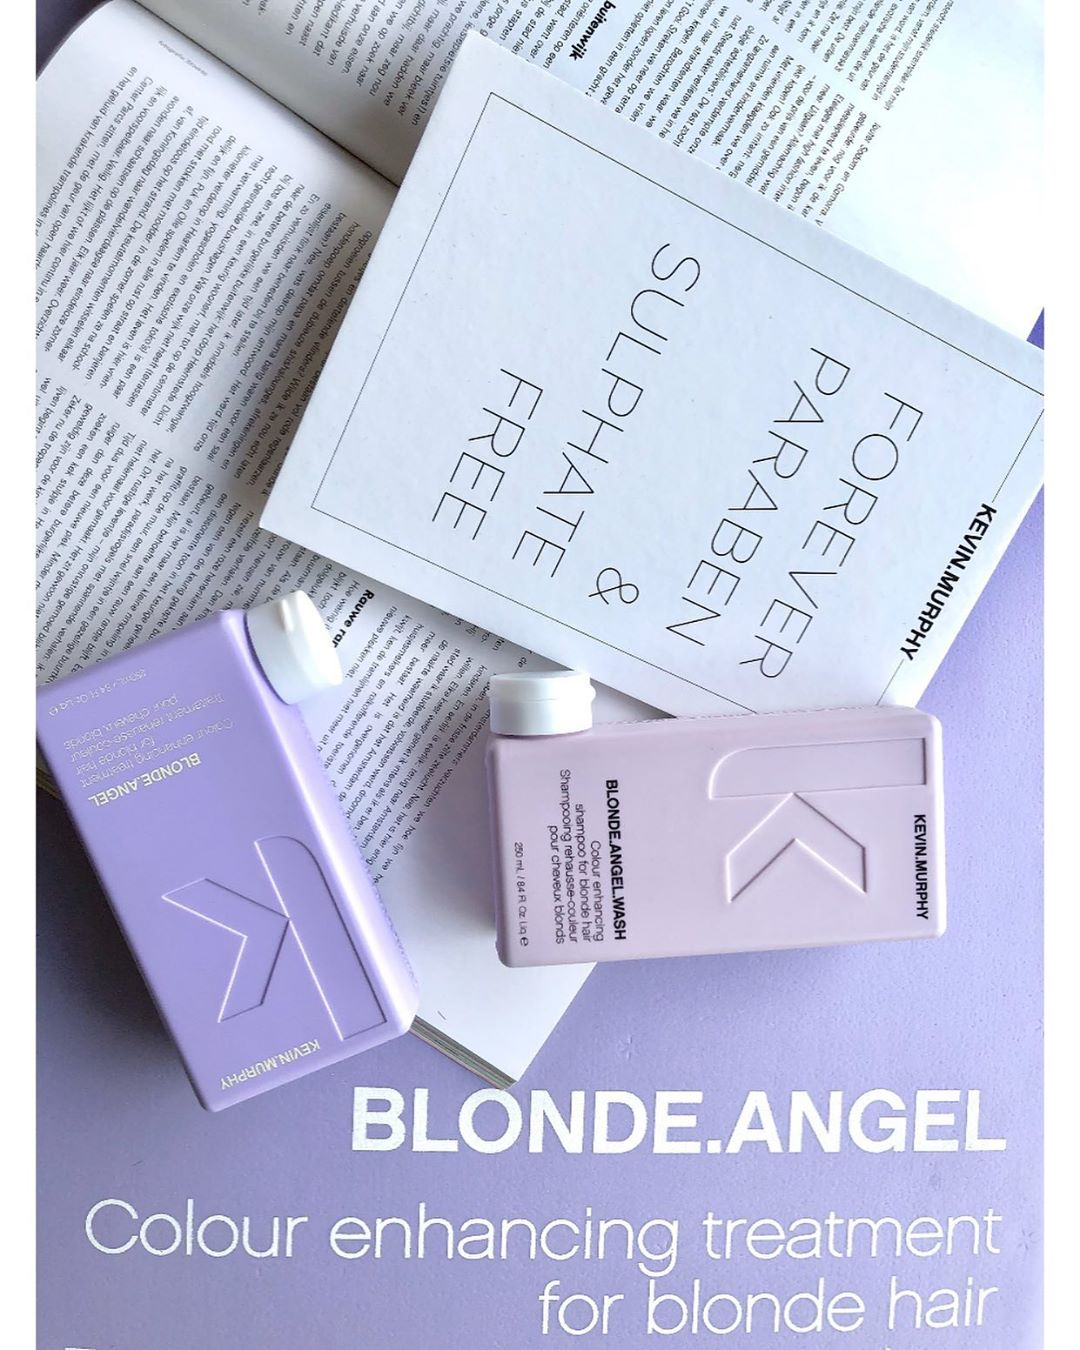 BLONDE.ANGEL.WASH // BLONDE.ANGEL TREATMENT ? // Blondes have more fun! ??♀️ @kevinmurphynl #kevinmurphy #kevinmurphyproducts #skincareforyourhair #ecofriendly ? #savetheplanet #crualtyfree // parabeen en sulfaat vrij✔️ // People need nature, but nature doesn't need people ? // ? photo made @kenenjerrys